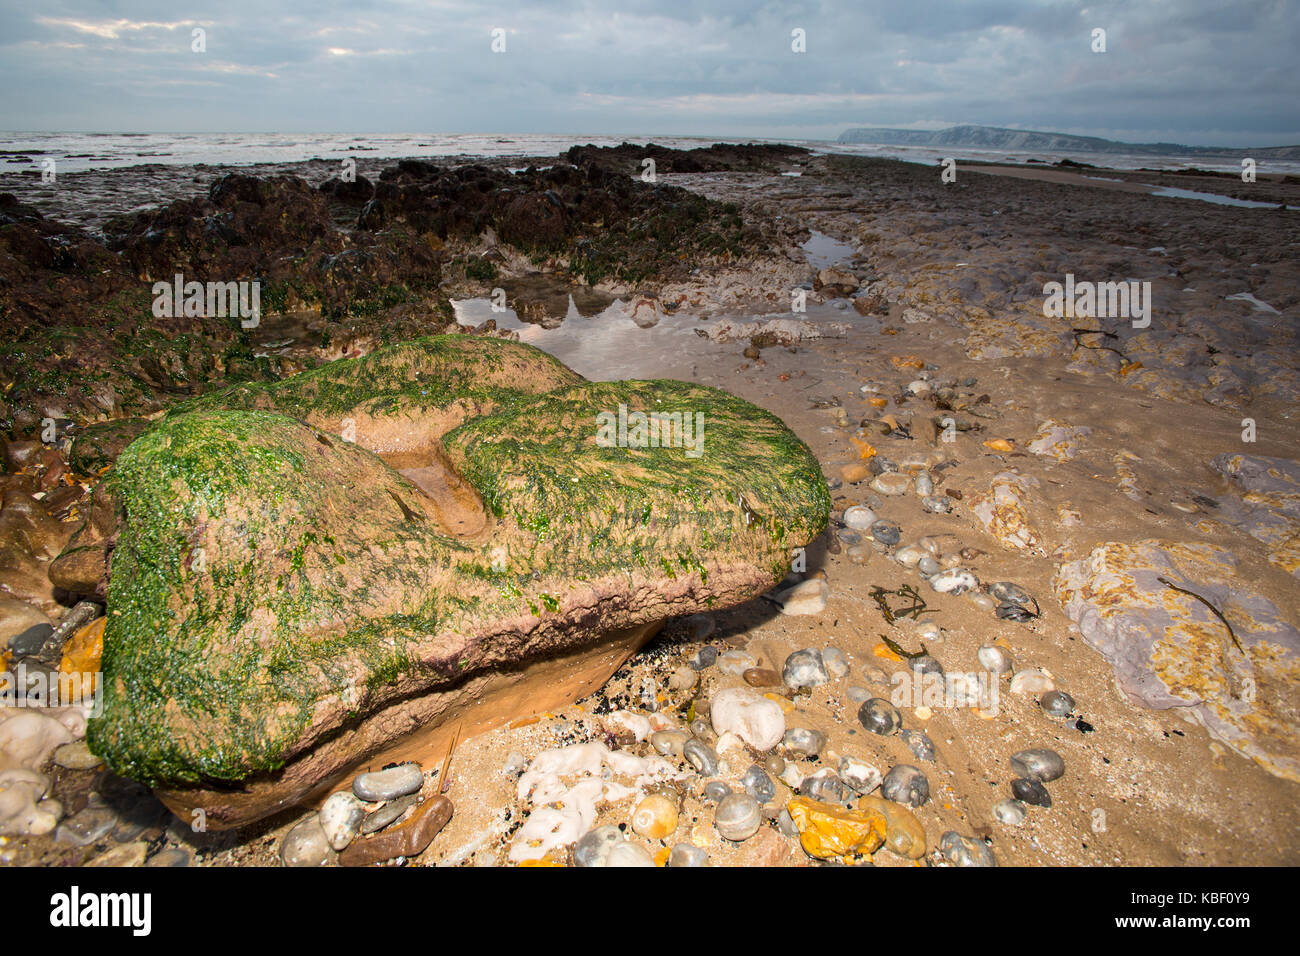 Iguanodon fossil footprint cast on the beach at Compton Bay, Isle of Wight, England, UK, - Stock Image